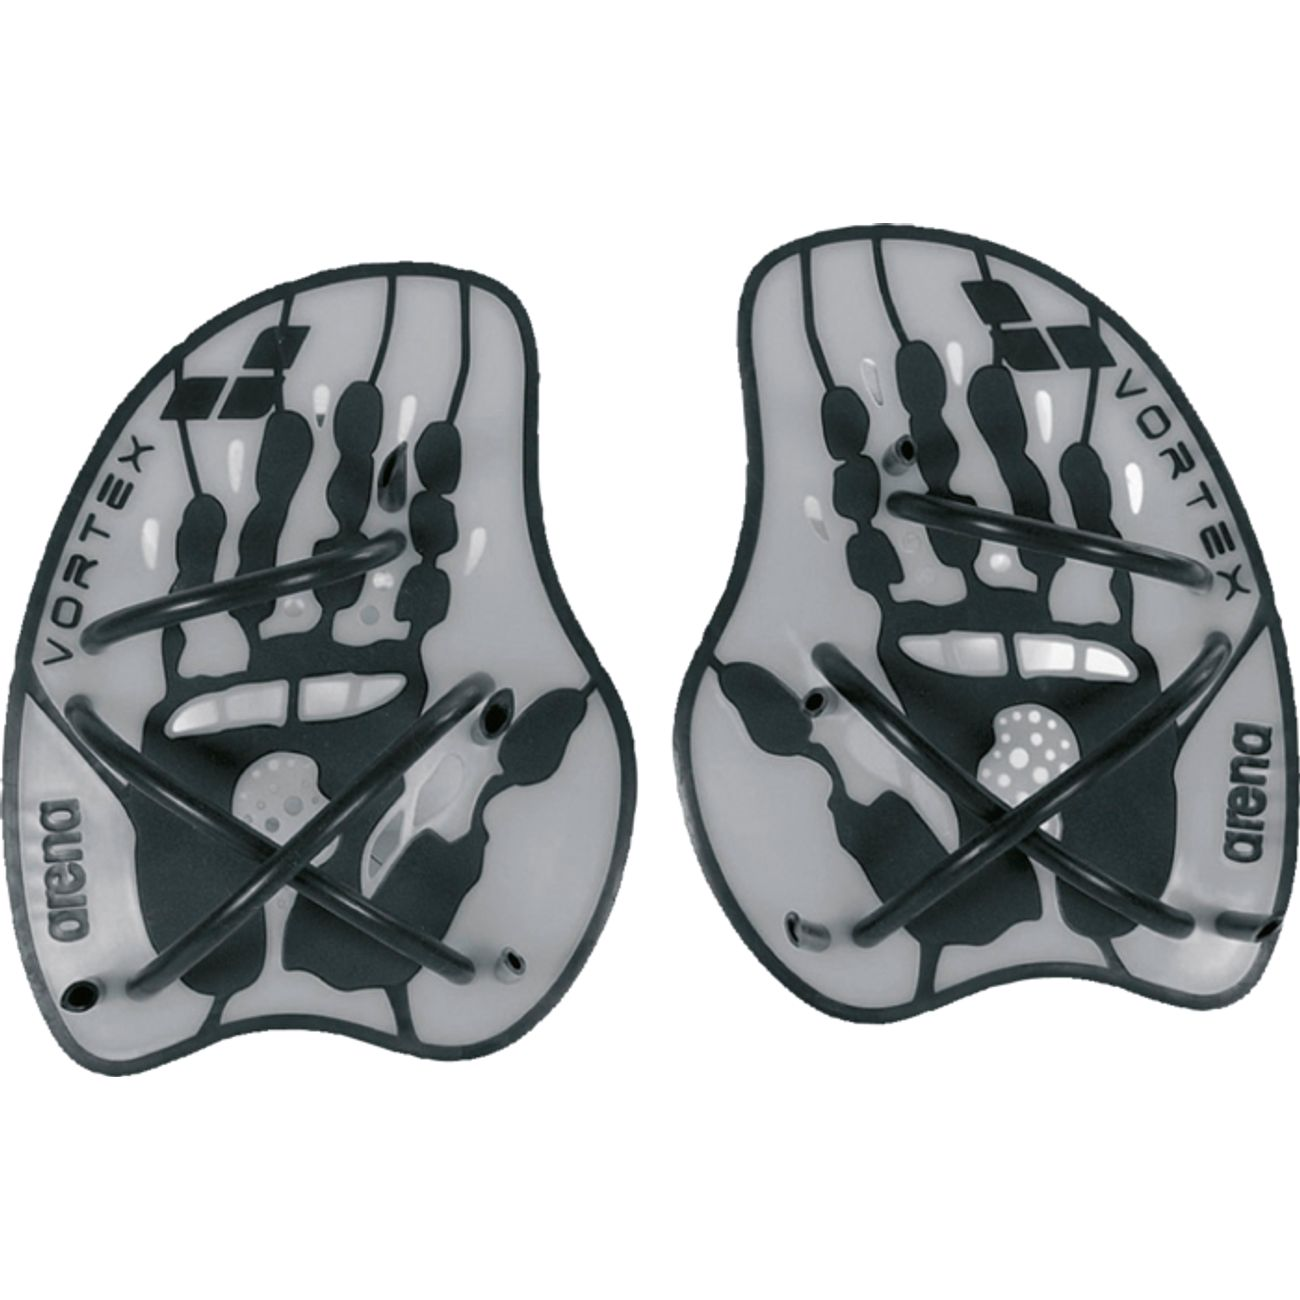 Evolution Paddle Arena Natation Hand Adulte Vortex D29bEHIWeY